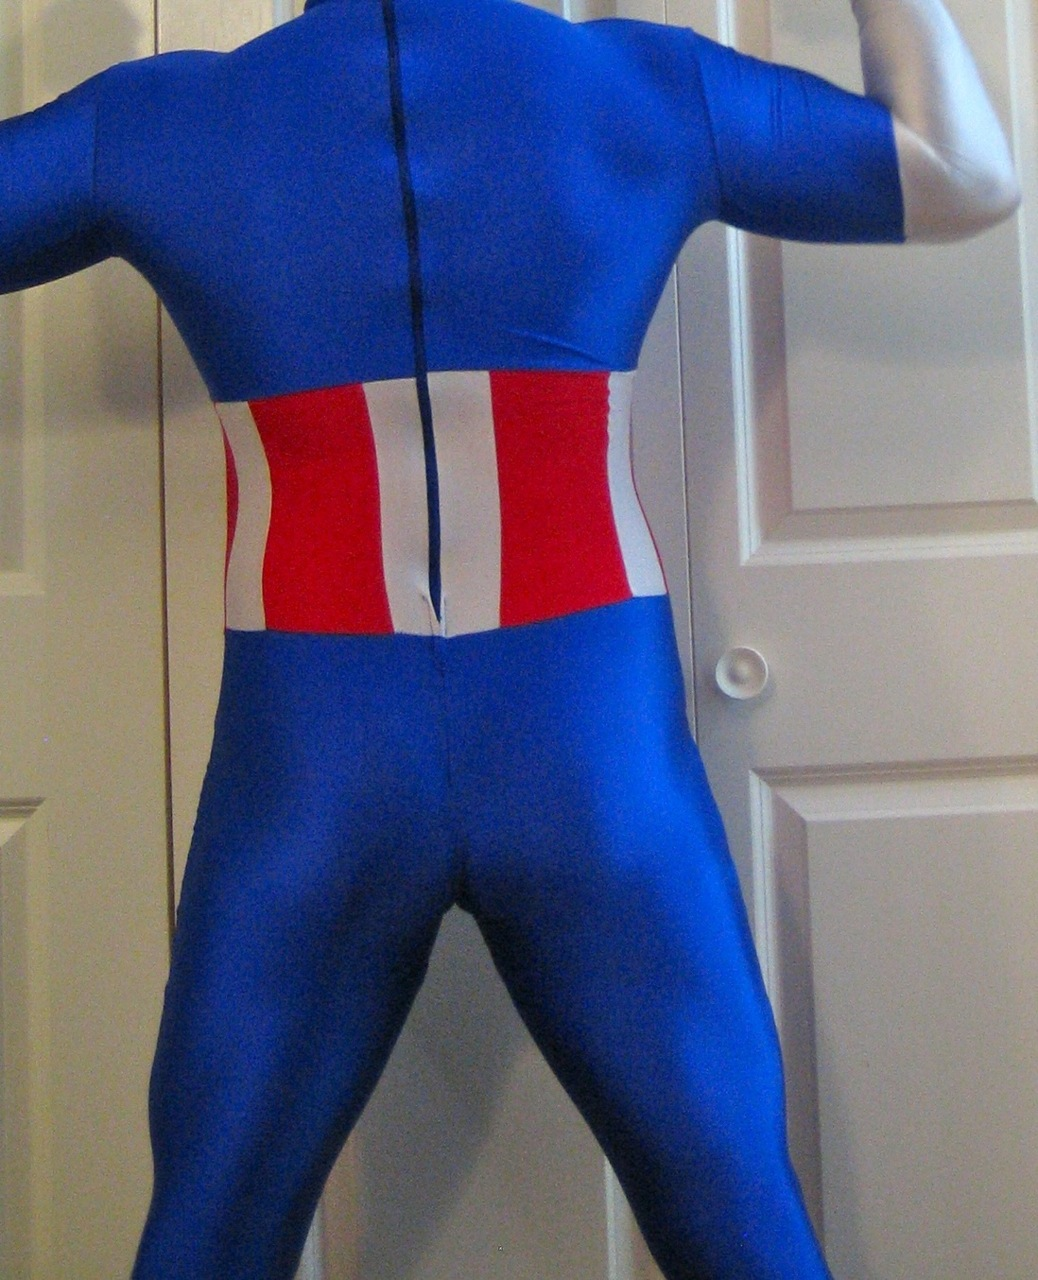 Throwback: One of Pablo's old Captain America suits.